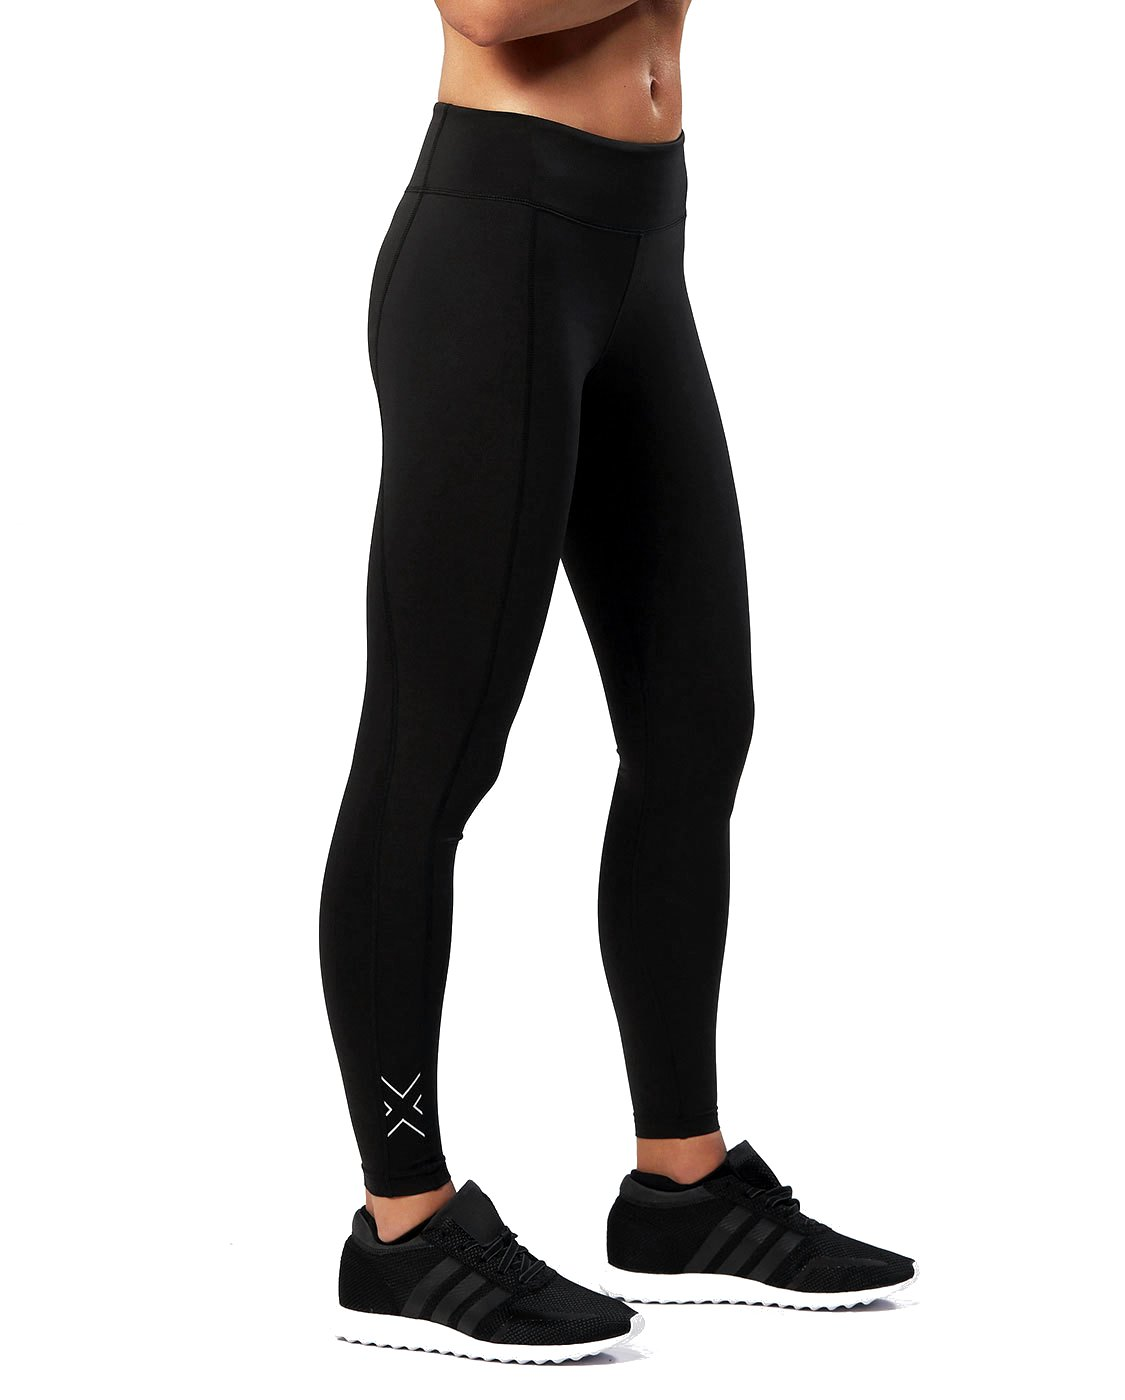 2XU Women's Active Compression Tights, Black/Silver, Medium by 2XU (Image #1)